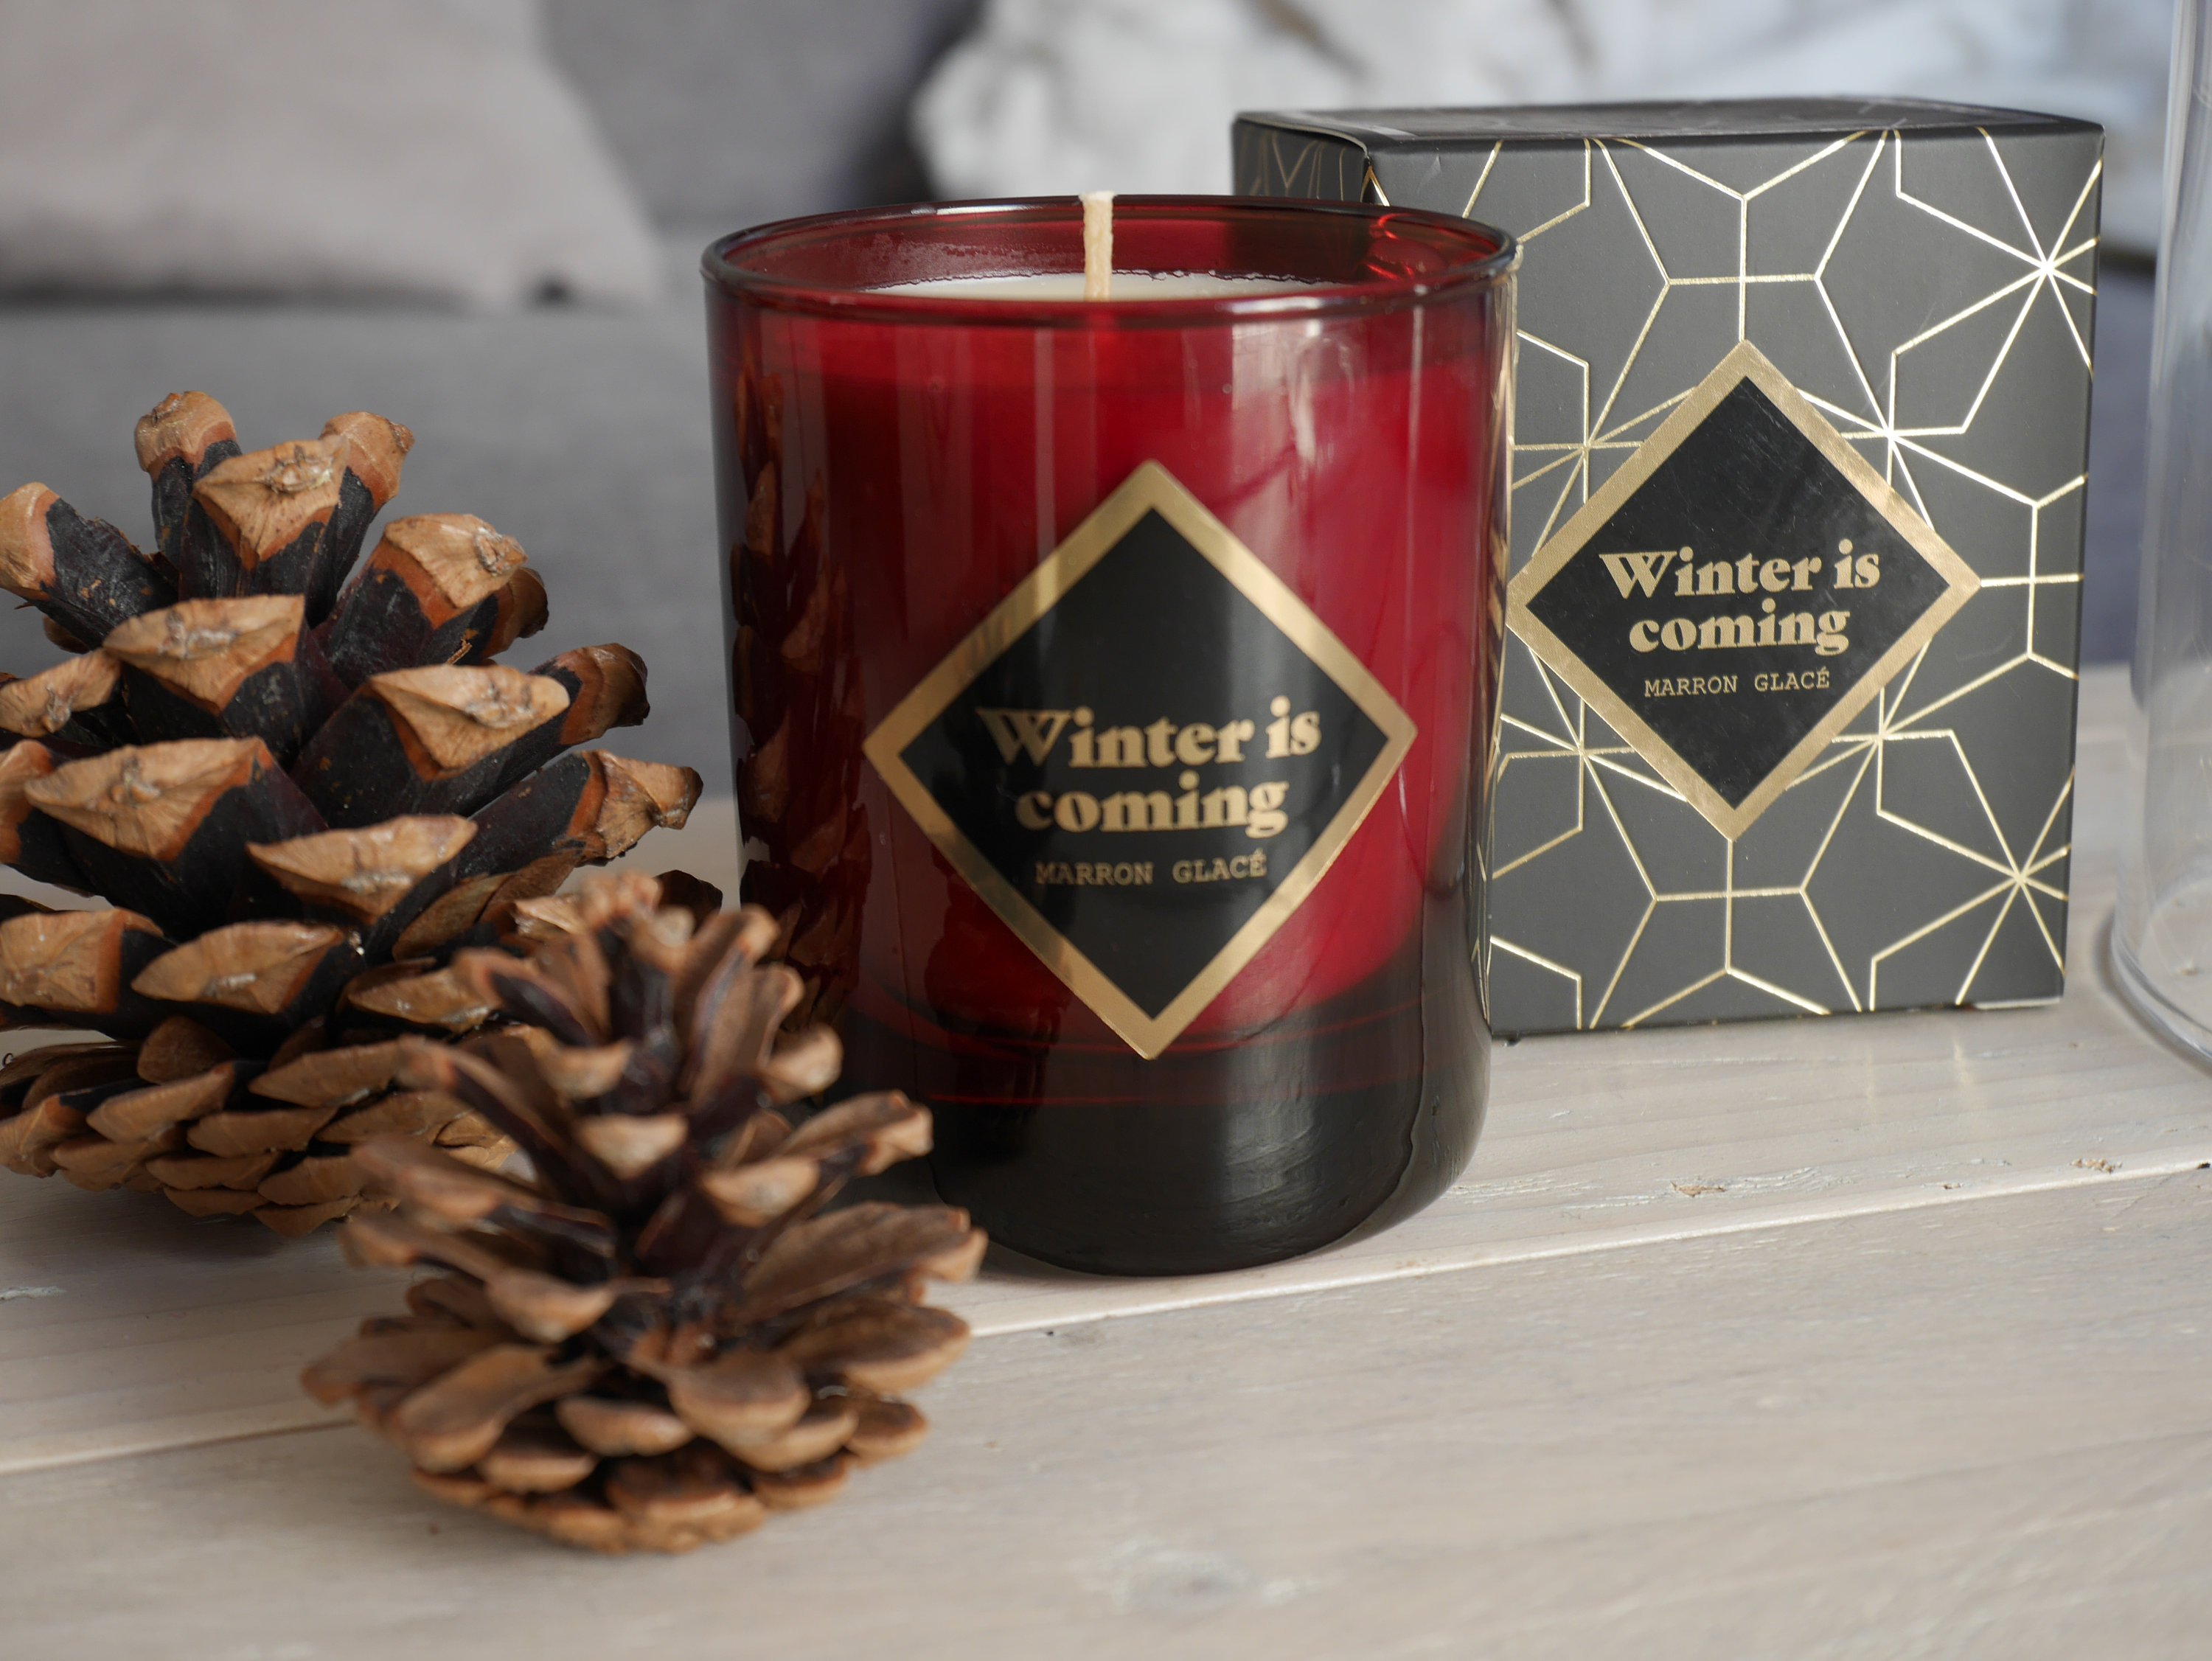 Bougie Winter is coming parfum Marron glacé - LARTOSE